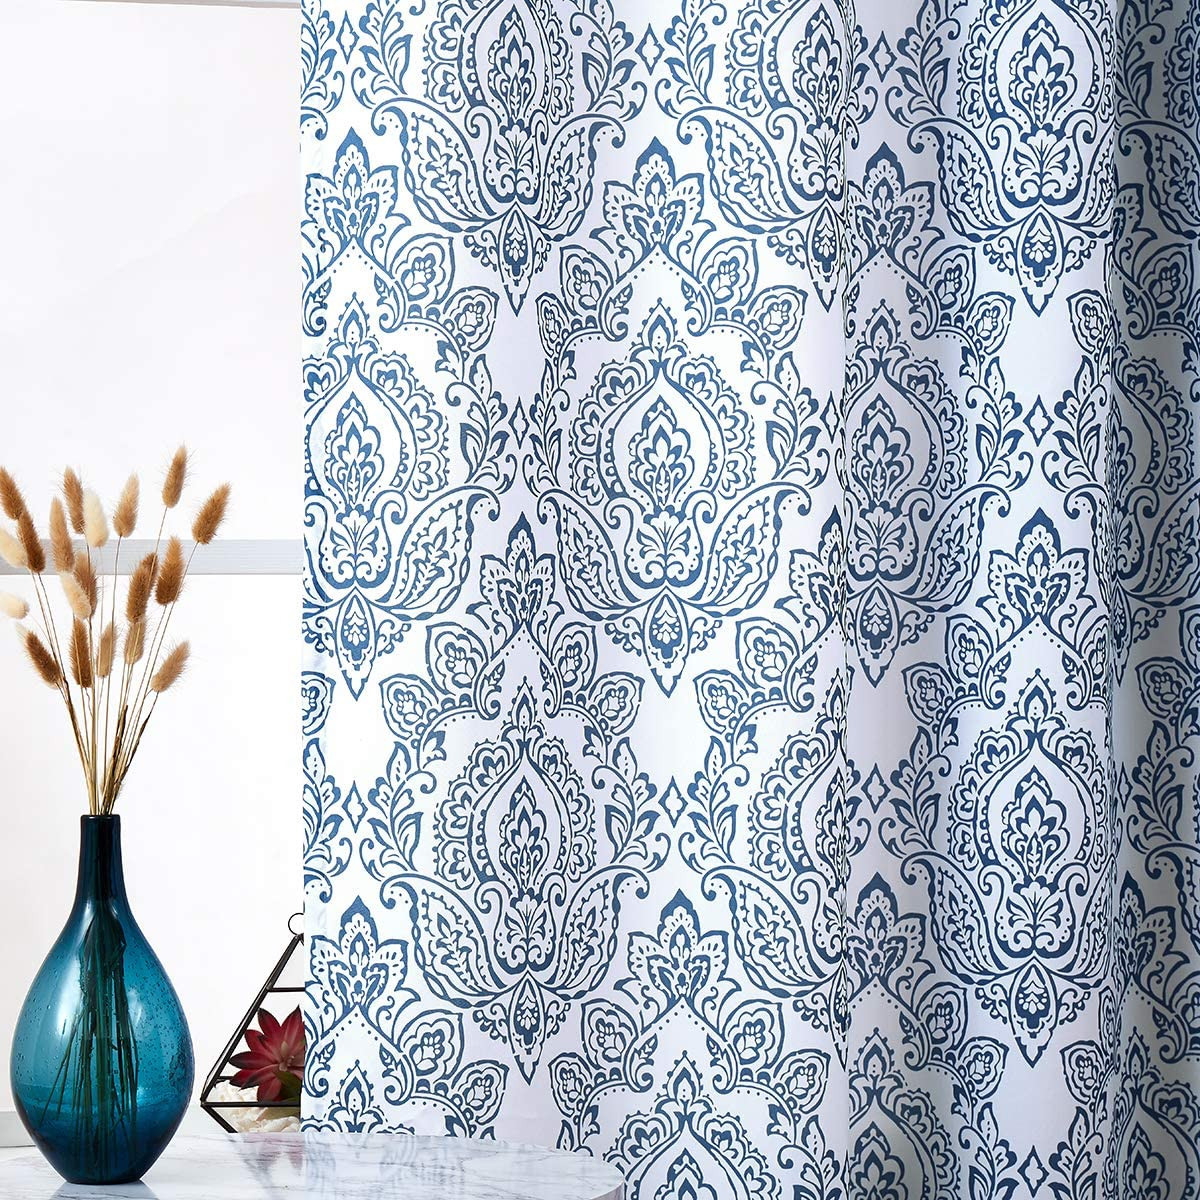 White Blue Curtains For Living Room 72 Inch Long Vintage Damask Printed Window Curtain Panels For Bedroom Grommet Top Floral Pattern Draperies 2 Pcs Walmart Canada